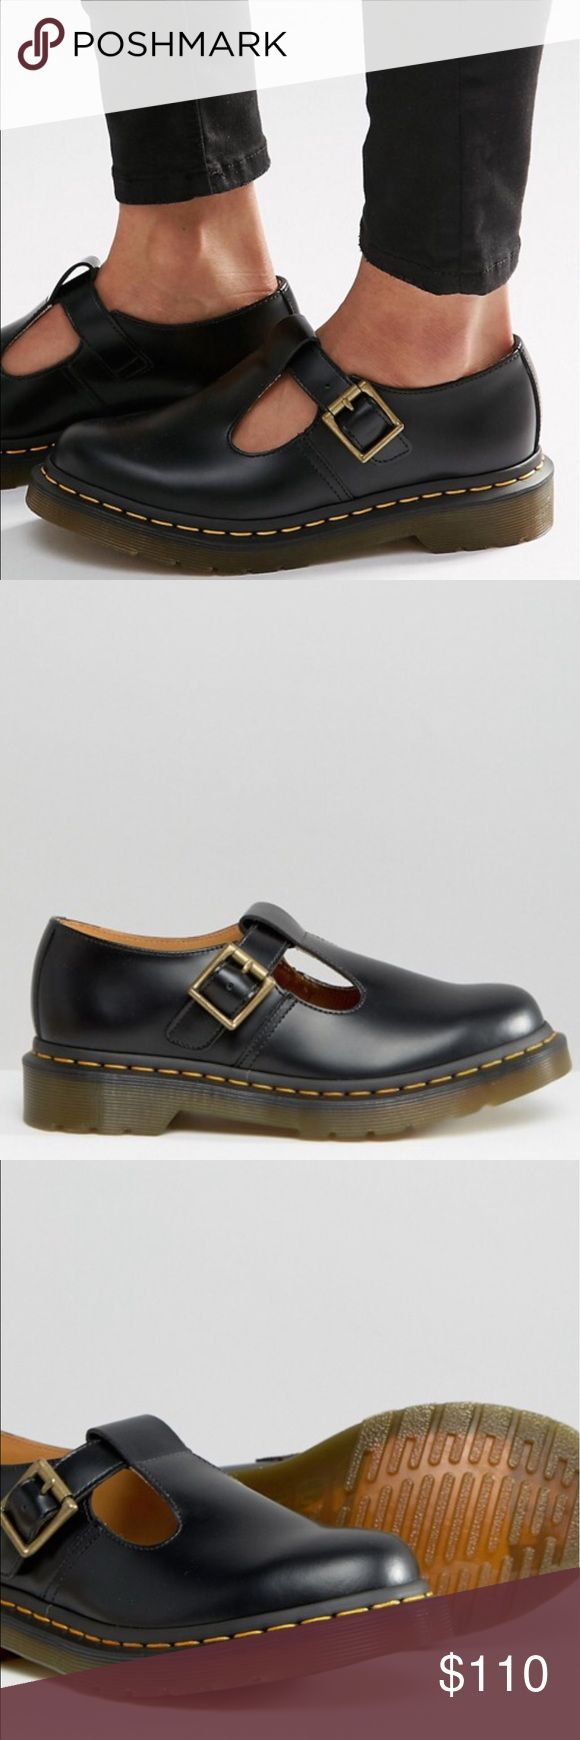 Dr Martens Core Polley T-Bar Flat Shoes Brand new never been used...                                   Smooth leather upper T-bar design Pin-buckle fastening Round toe Top stitch detail Air-cushioned sole Textured tread 100% Real Leather Upper Dr Martens Shoes Flats & Loafers